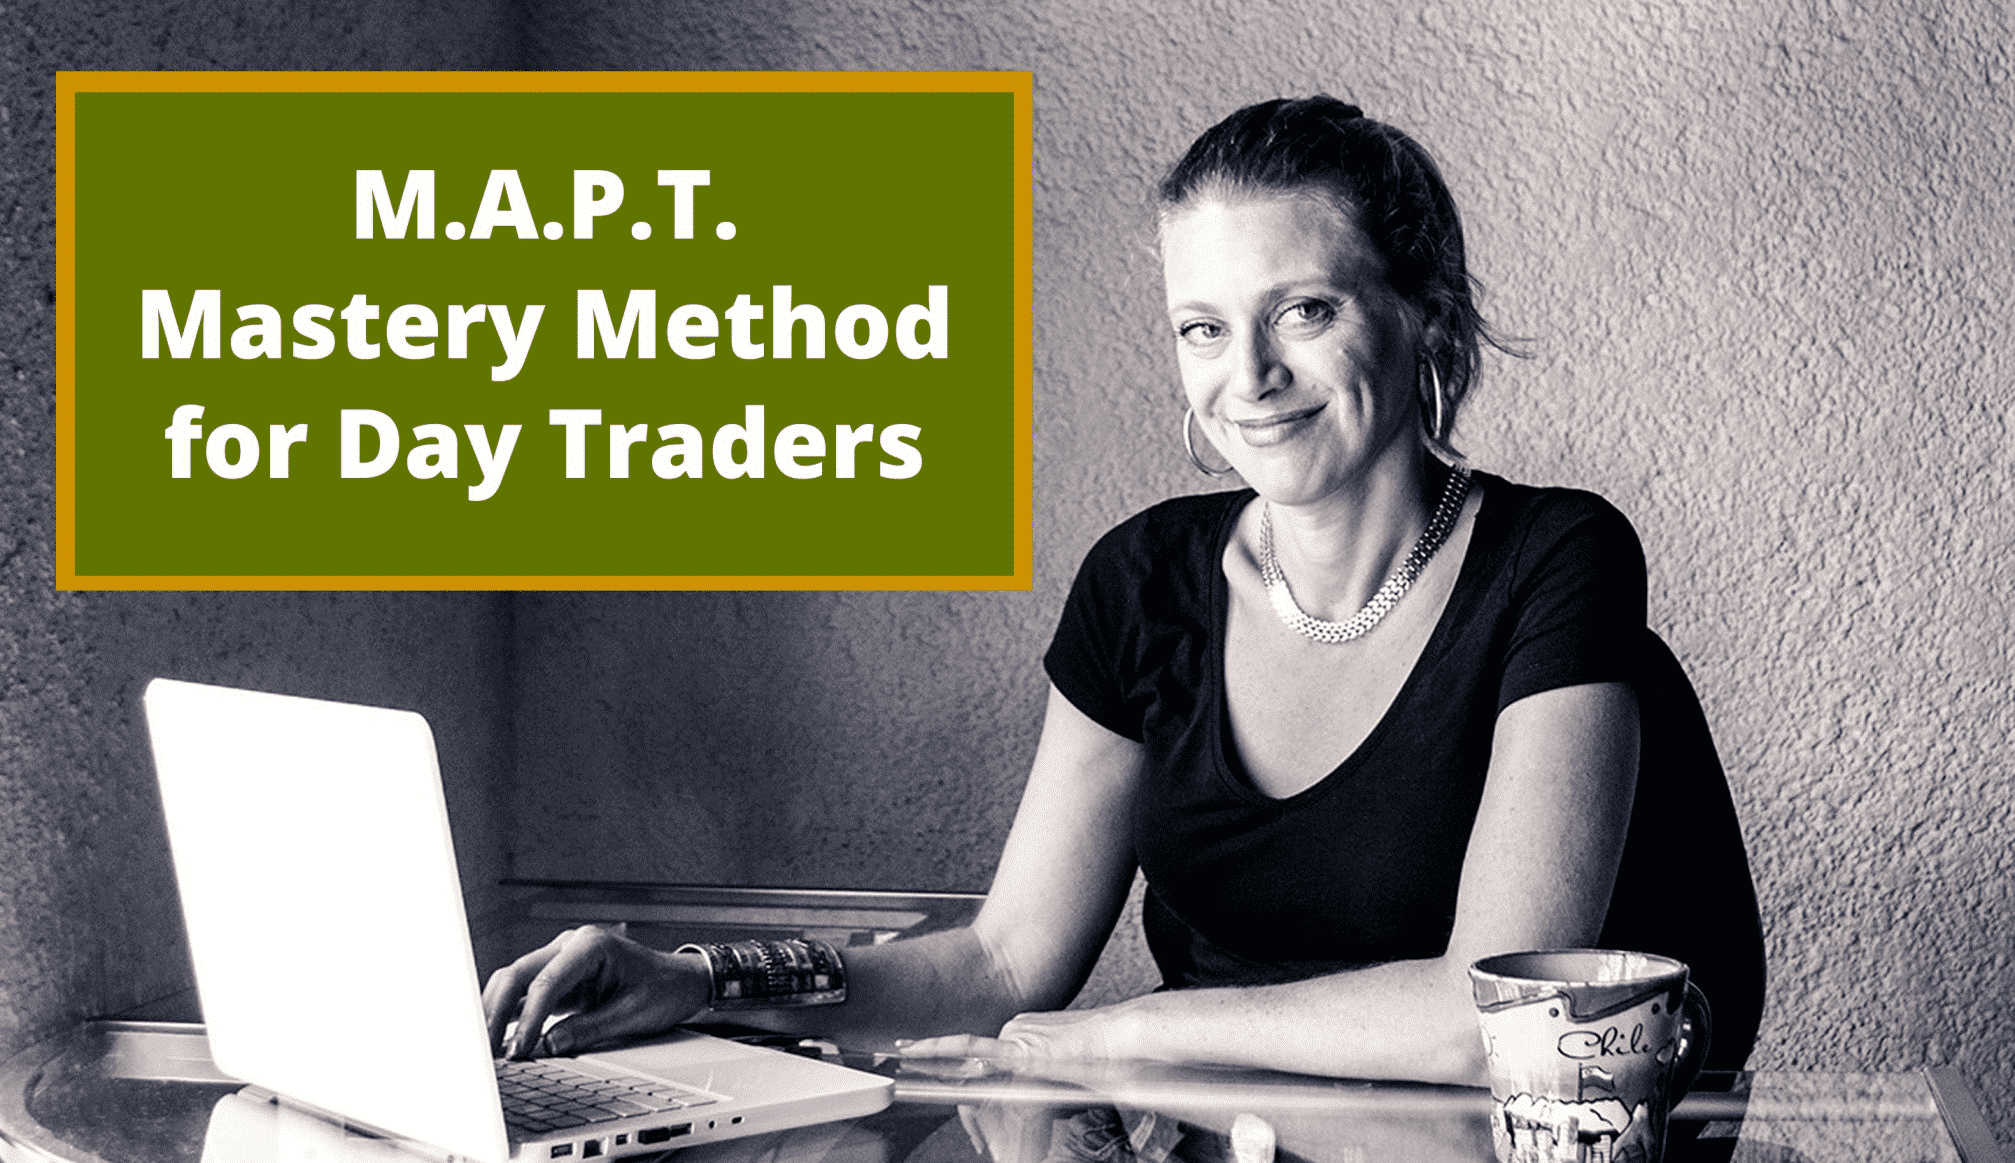 Day Trading Mindset Method, MAPT Mastery Method for Day Traders by The Trader Chick